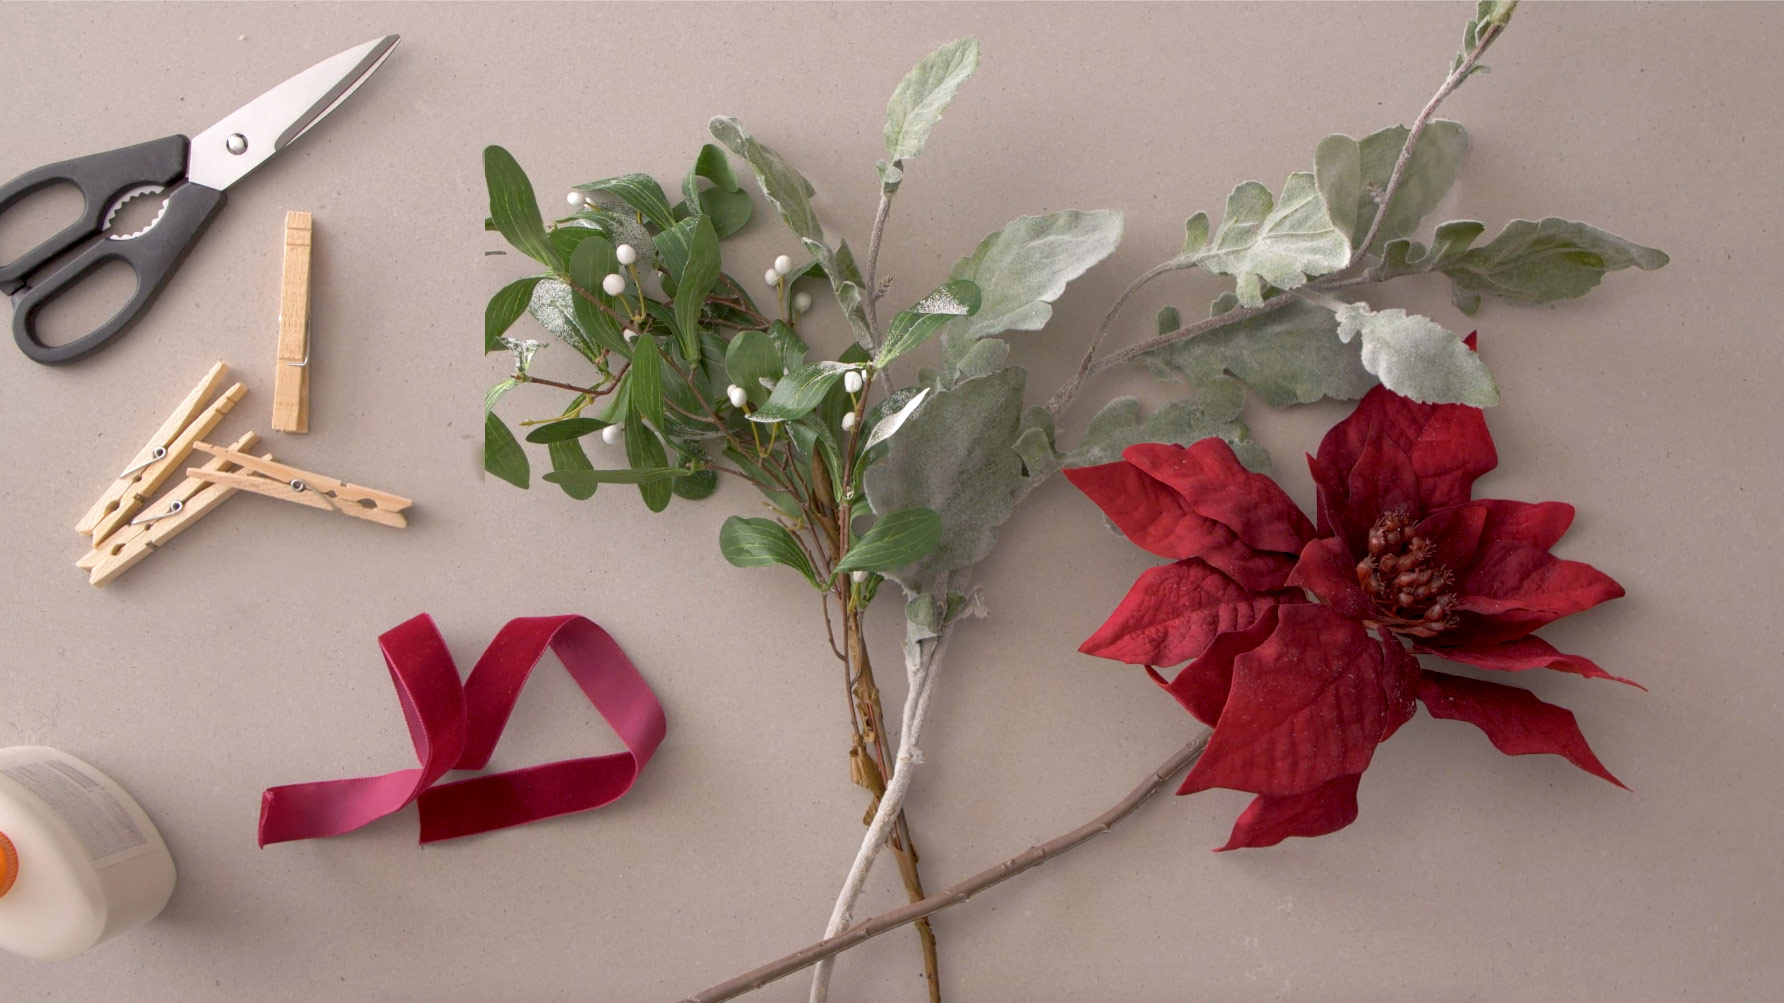 Fake poinsettias, ribbon, clothespins and other supplies.